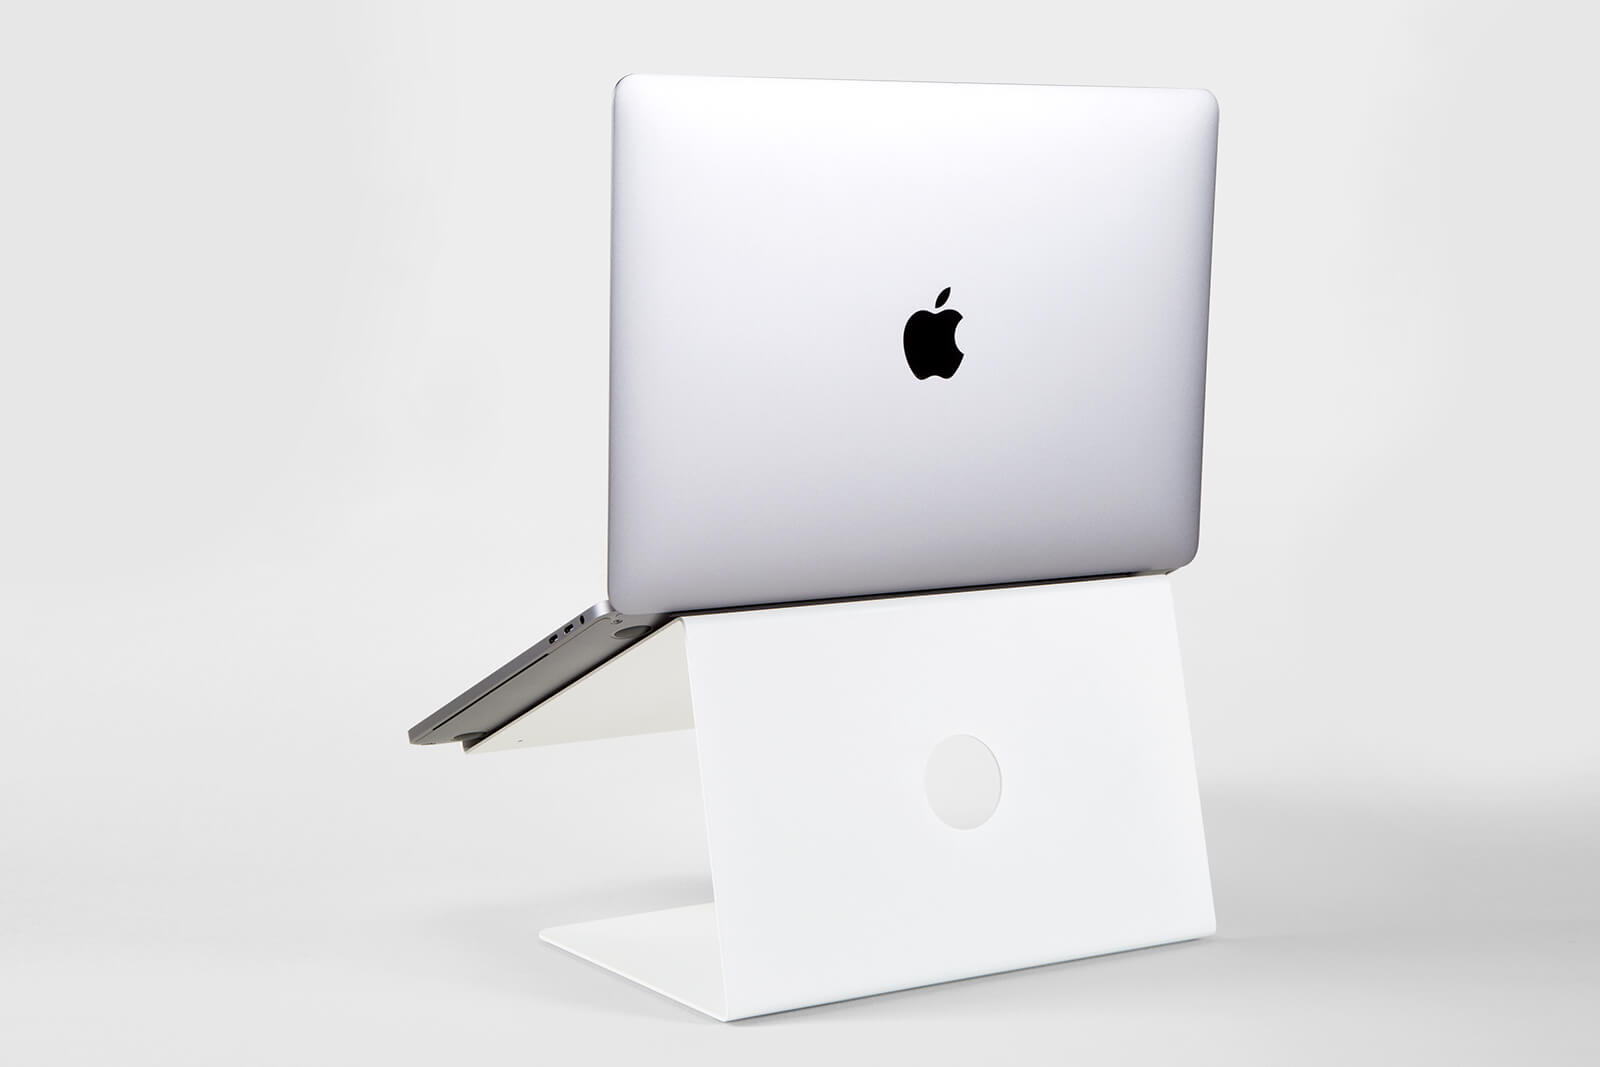 White stand for Apple Macbook